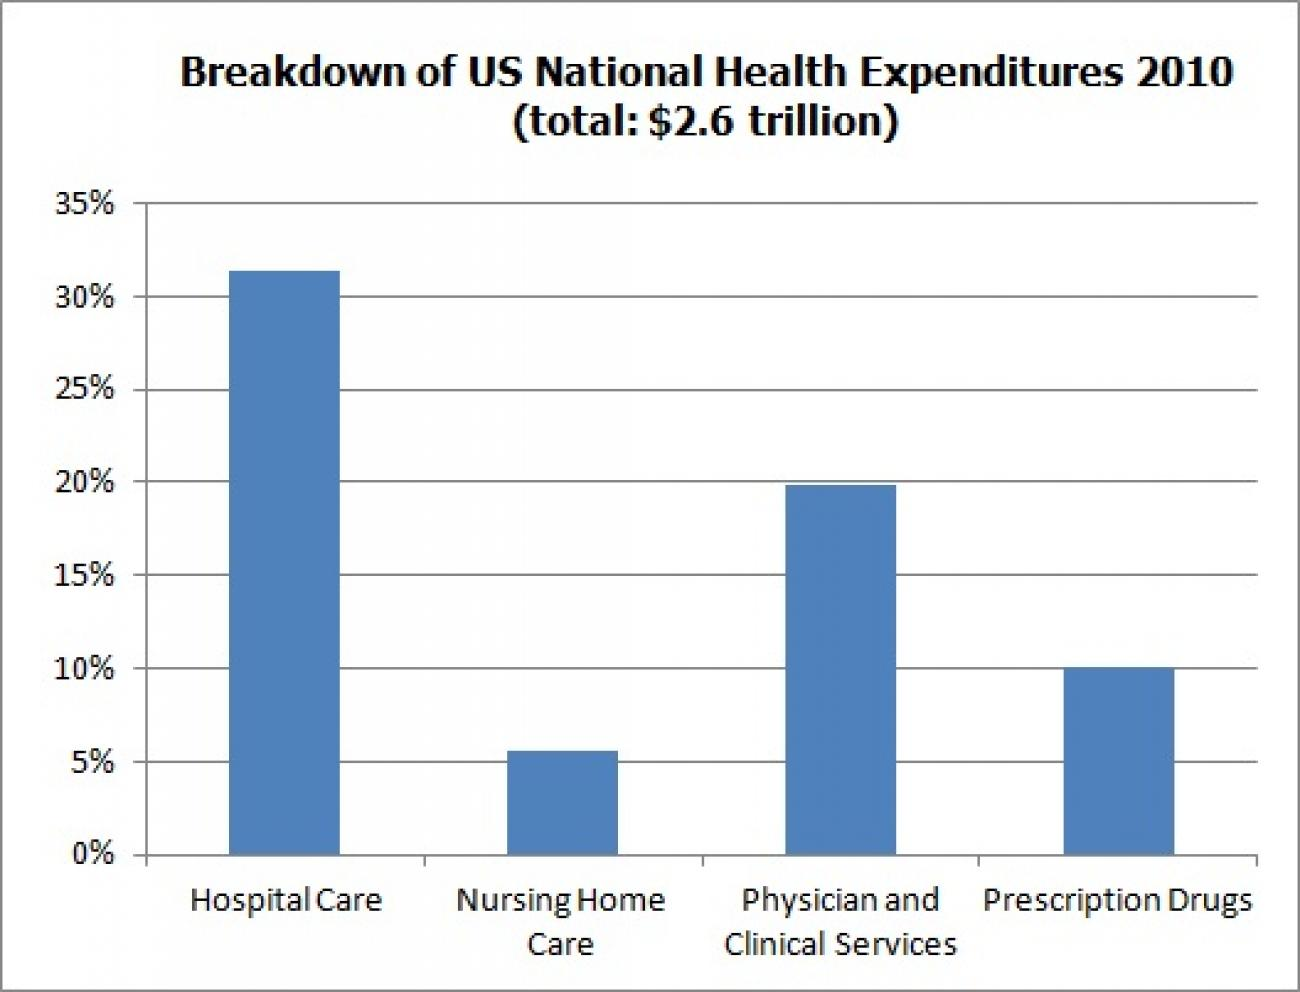 USA_Breakdown_of_Health_Expenditures